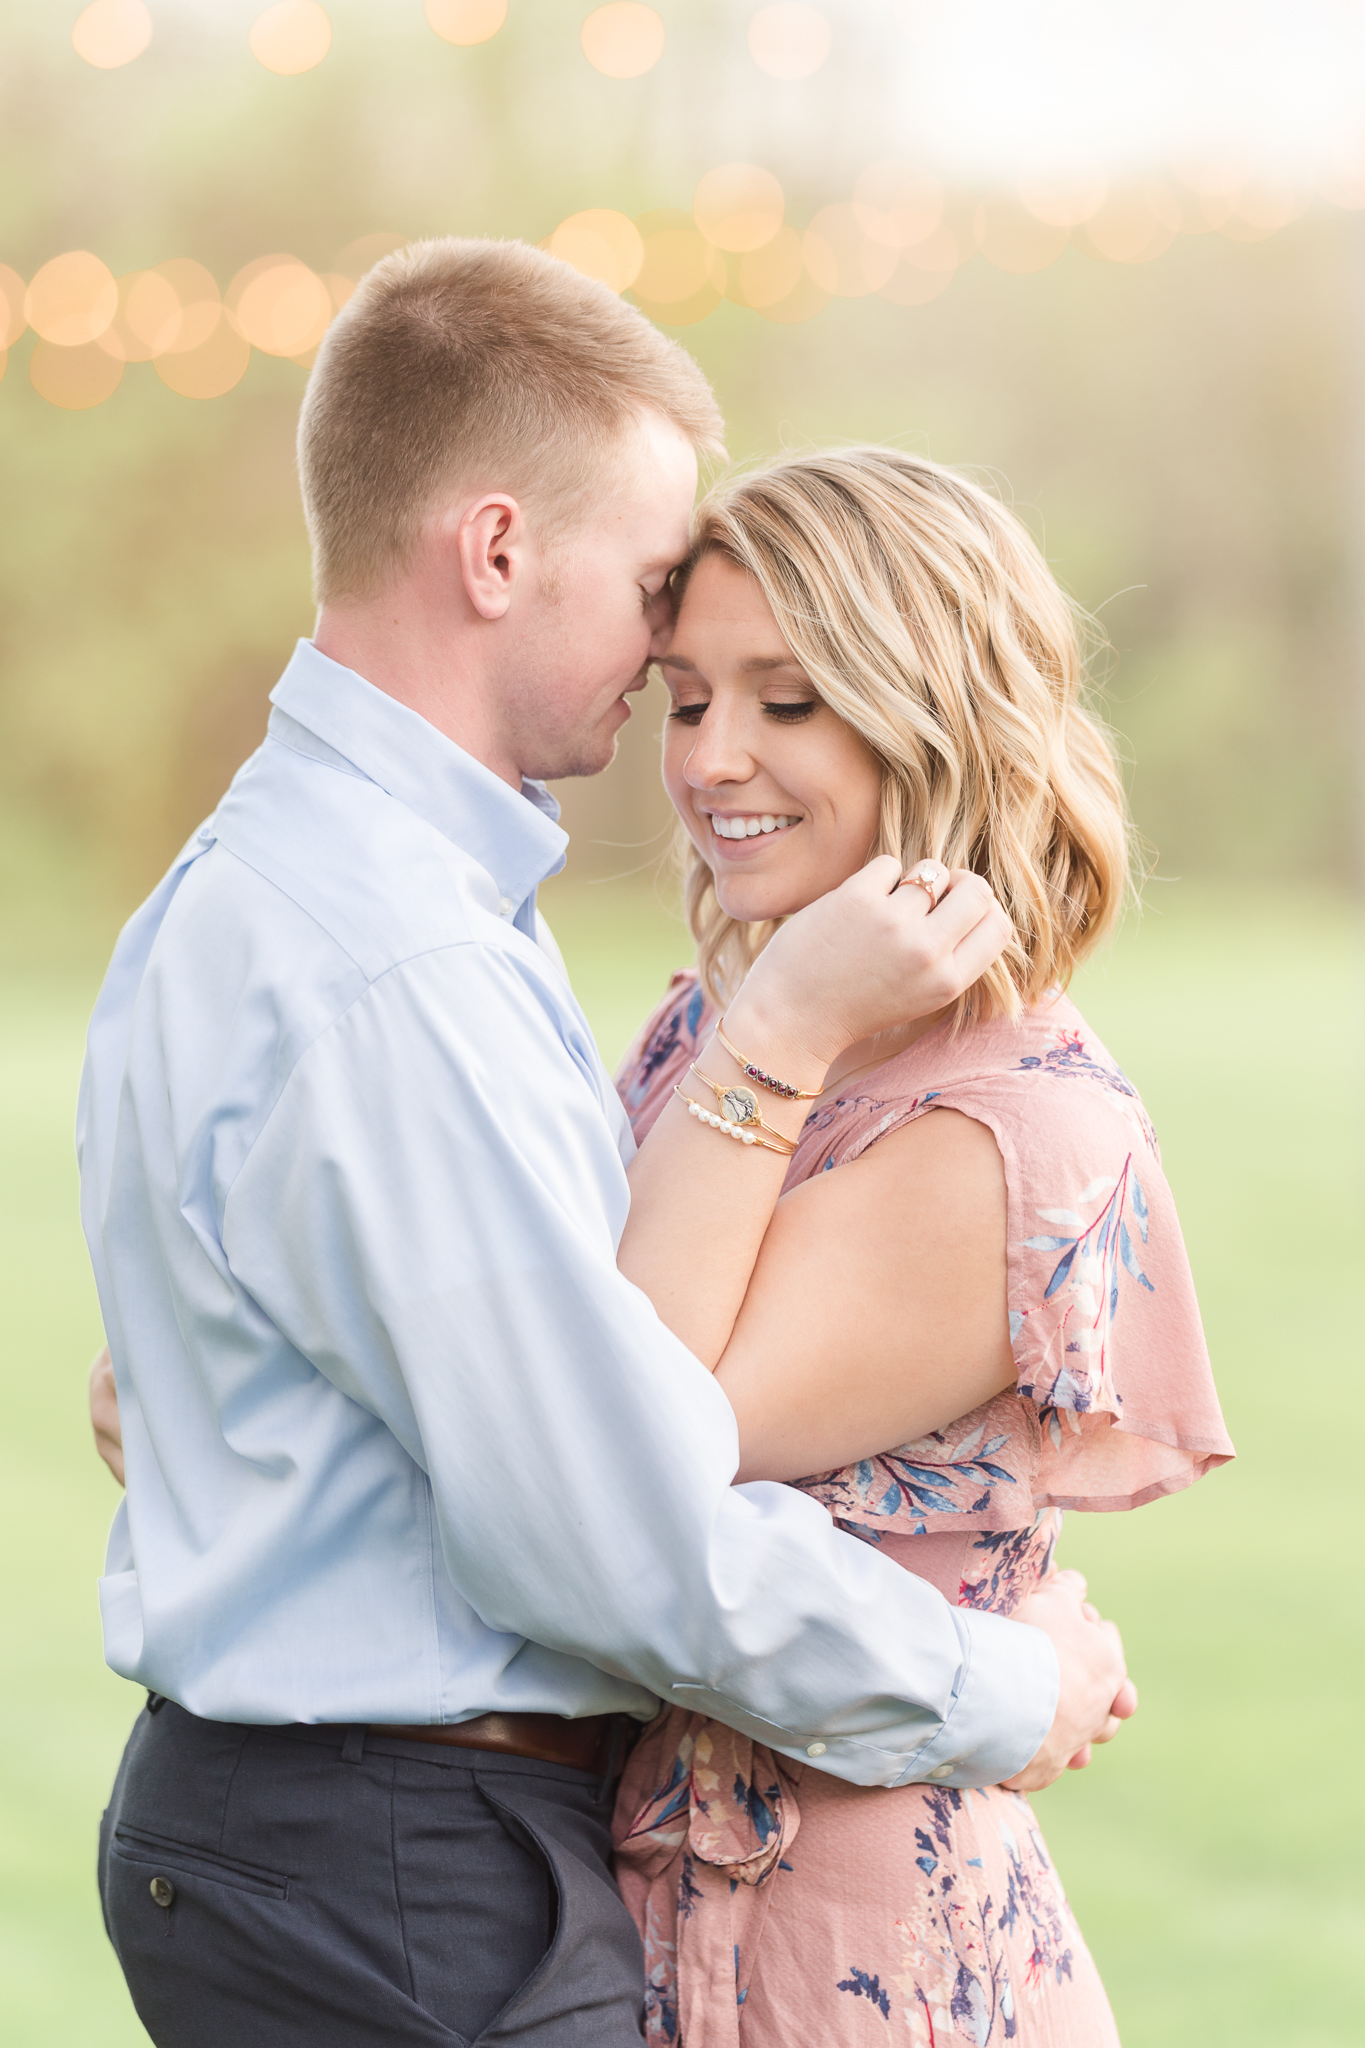 Richie Woods Nature Preserve and Mustard Seed Gardens Engagement Session Wedding Photos-39.jpg